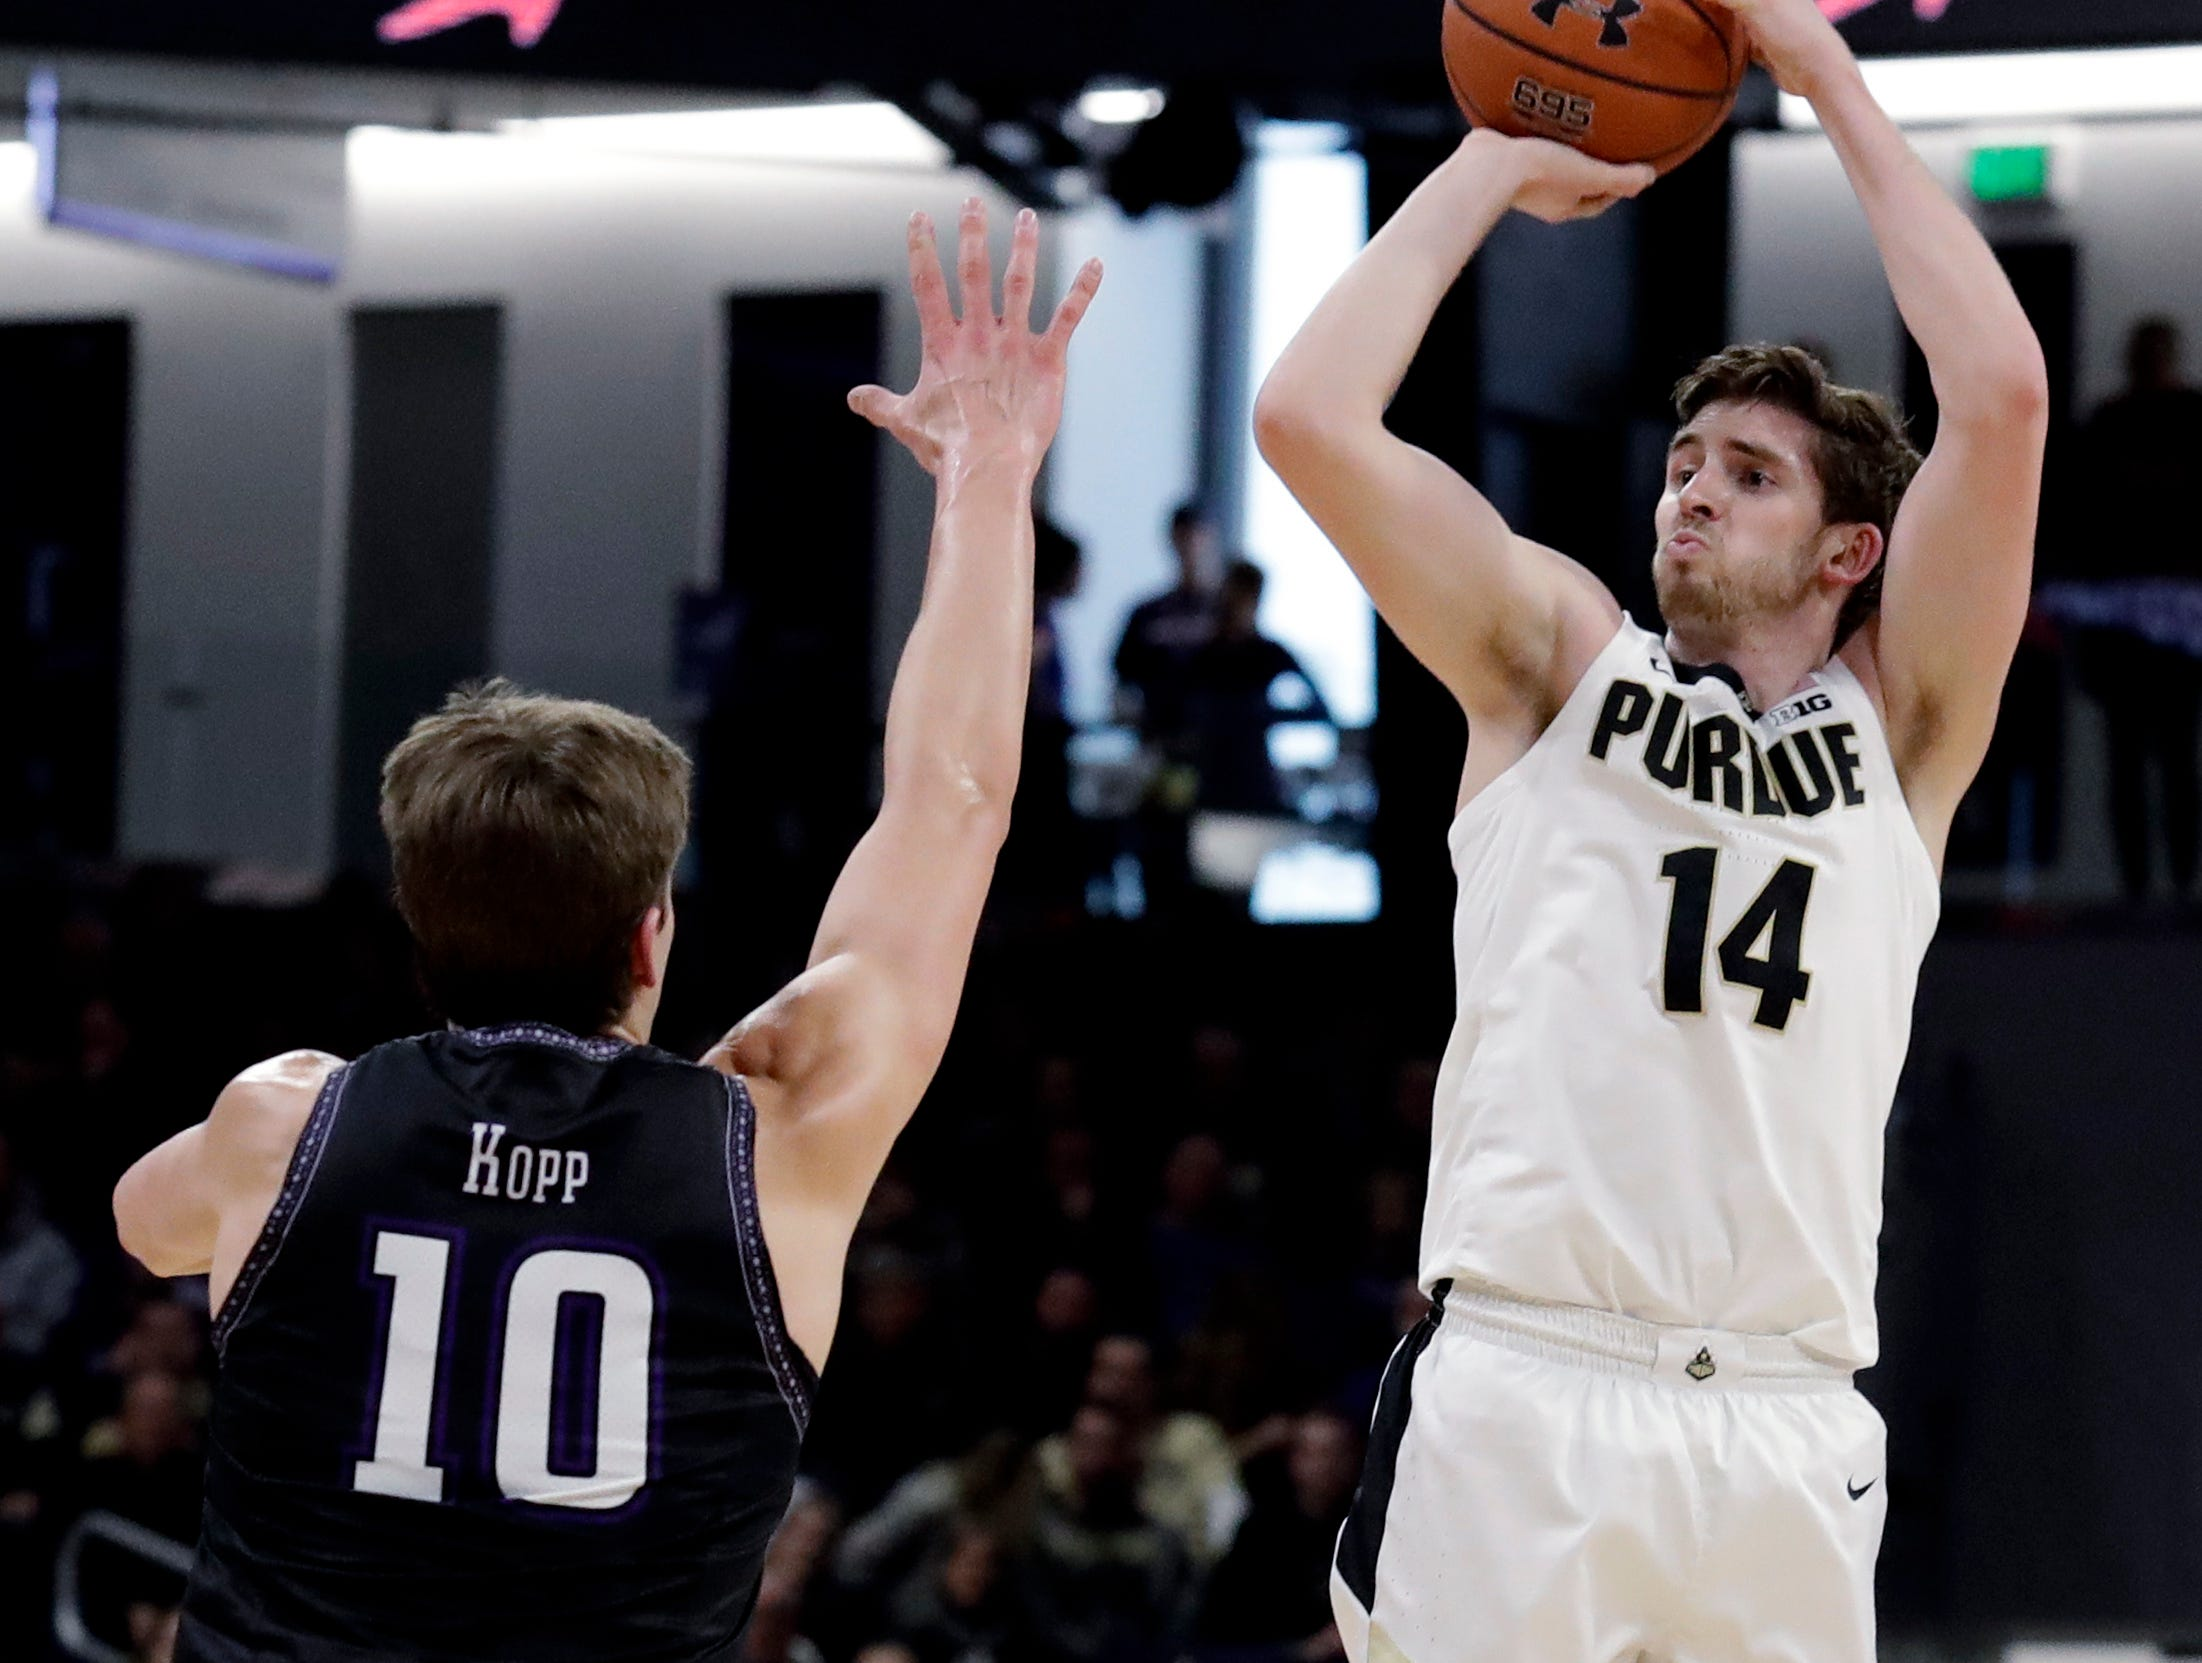 Purdue guard Ryan Cline, right, shoots against Northwestern forward Miller Kopp during the first half of an NCAA college basketball game Saturday, March 9, 2019, in Evanston, Ill. (AP Photo/Nam Y. Huh)